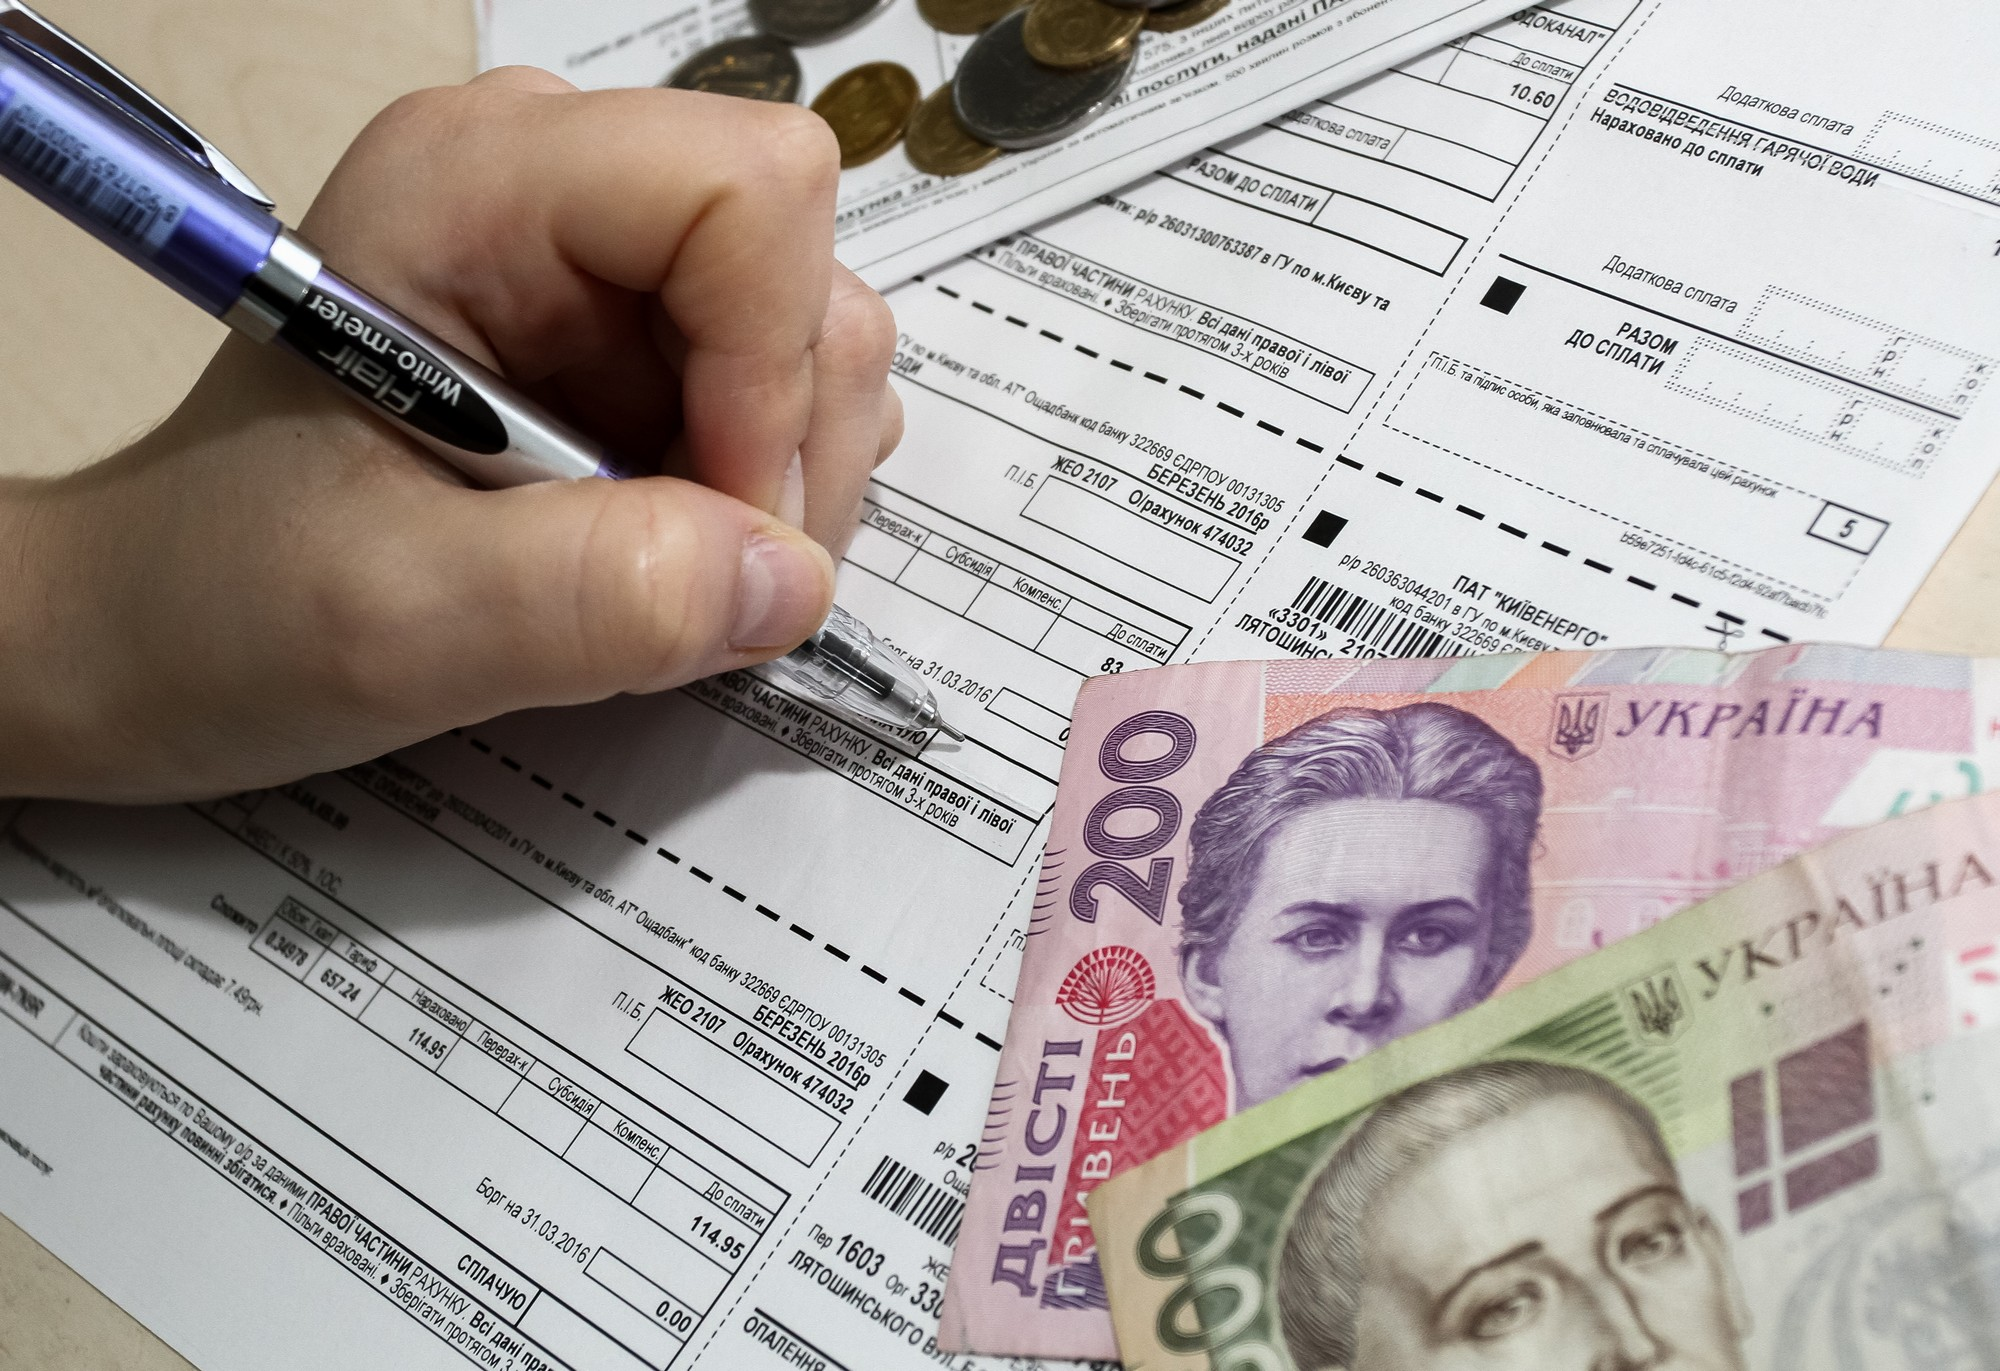 Predictions did not come true: despite quarantine, Ukrainians overpaid utility bills by over a quarter in April